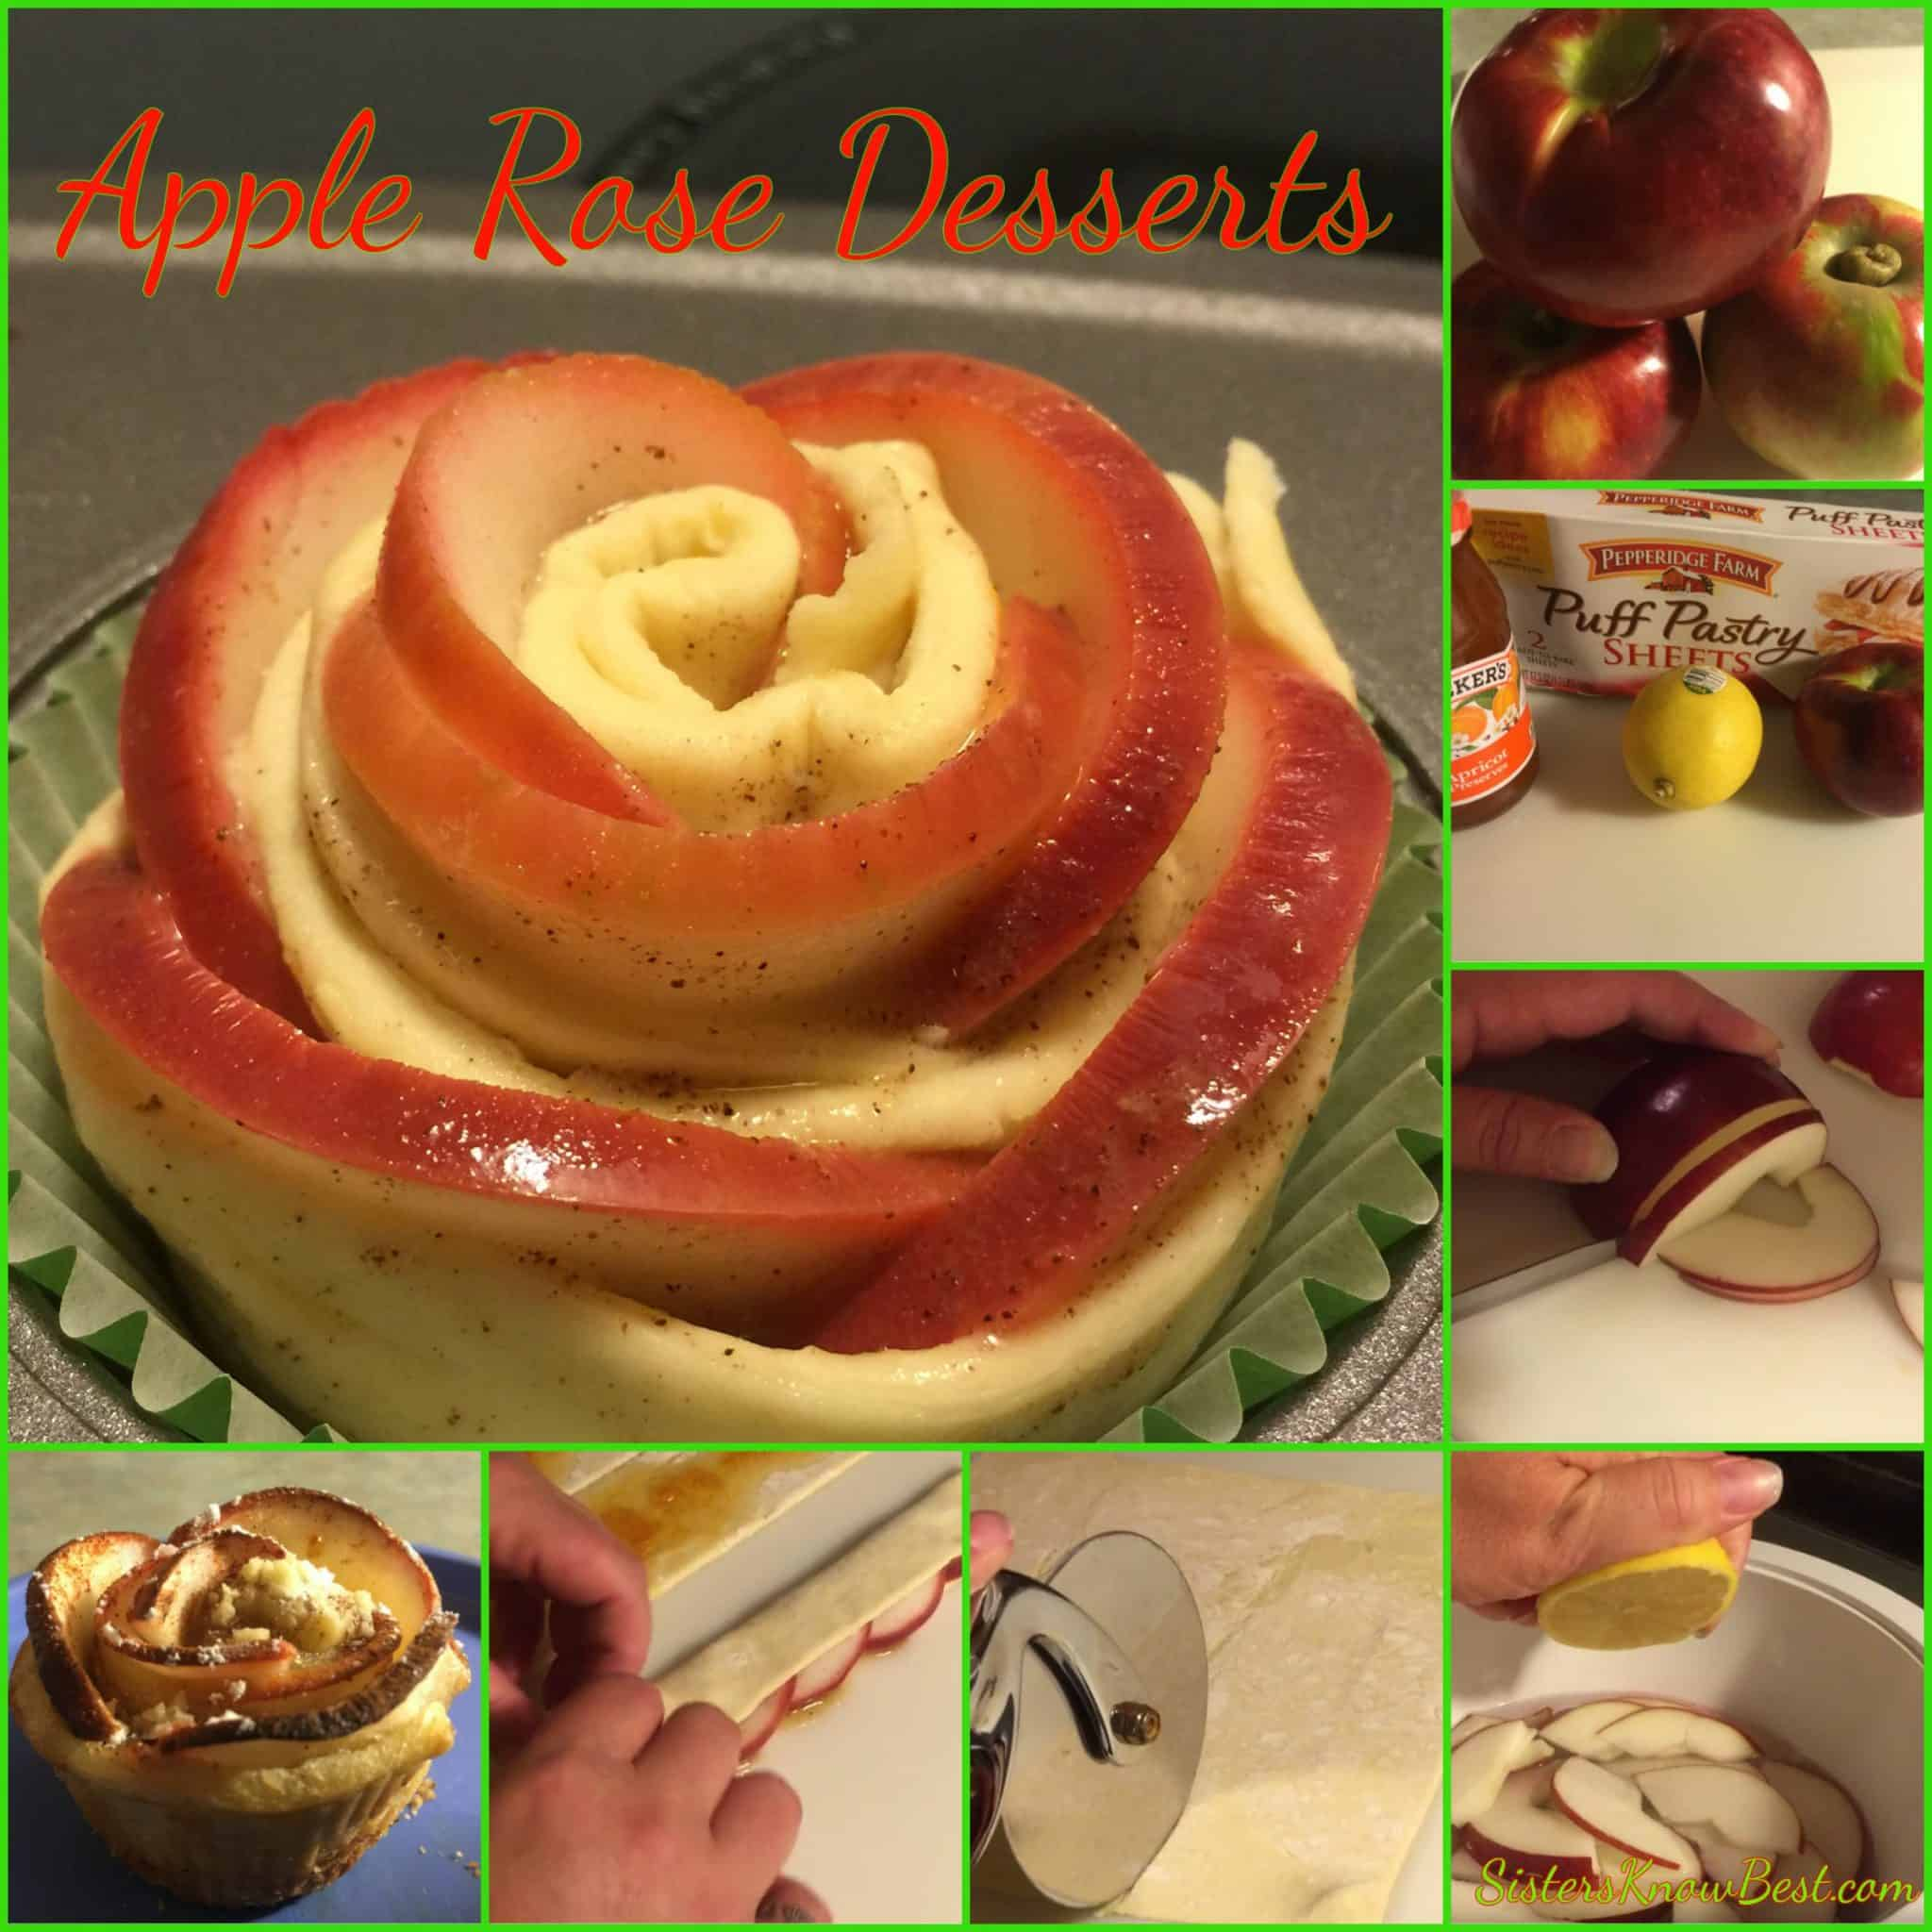 Apple Rose Desserts